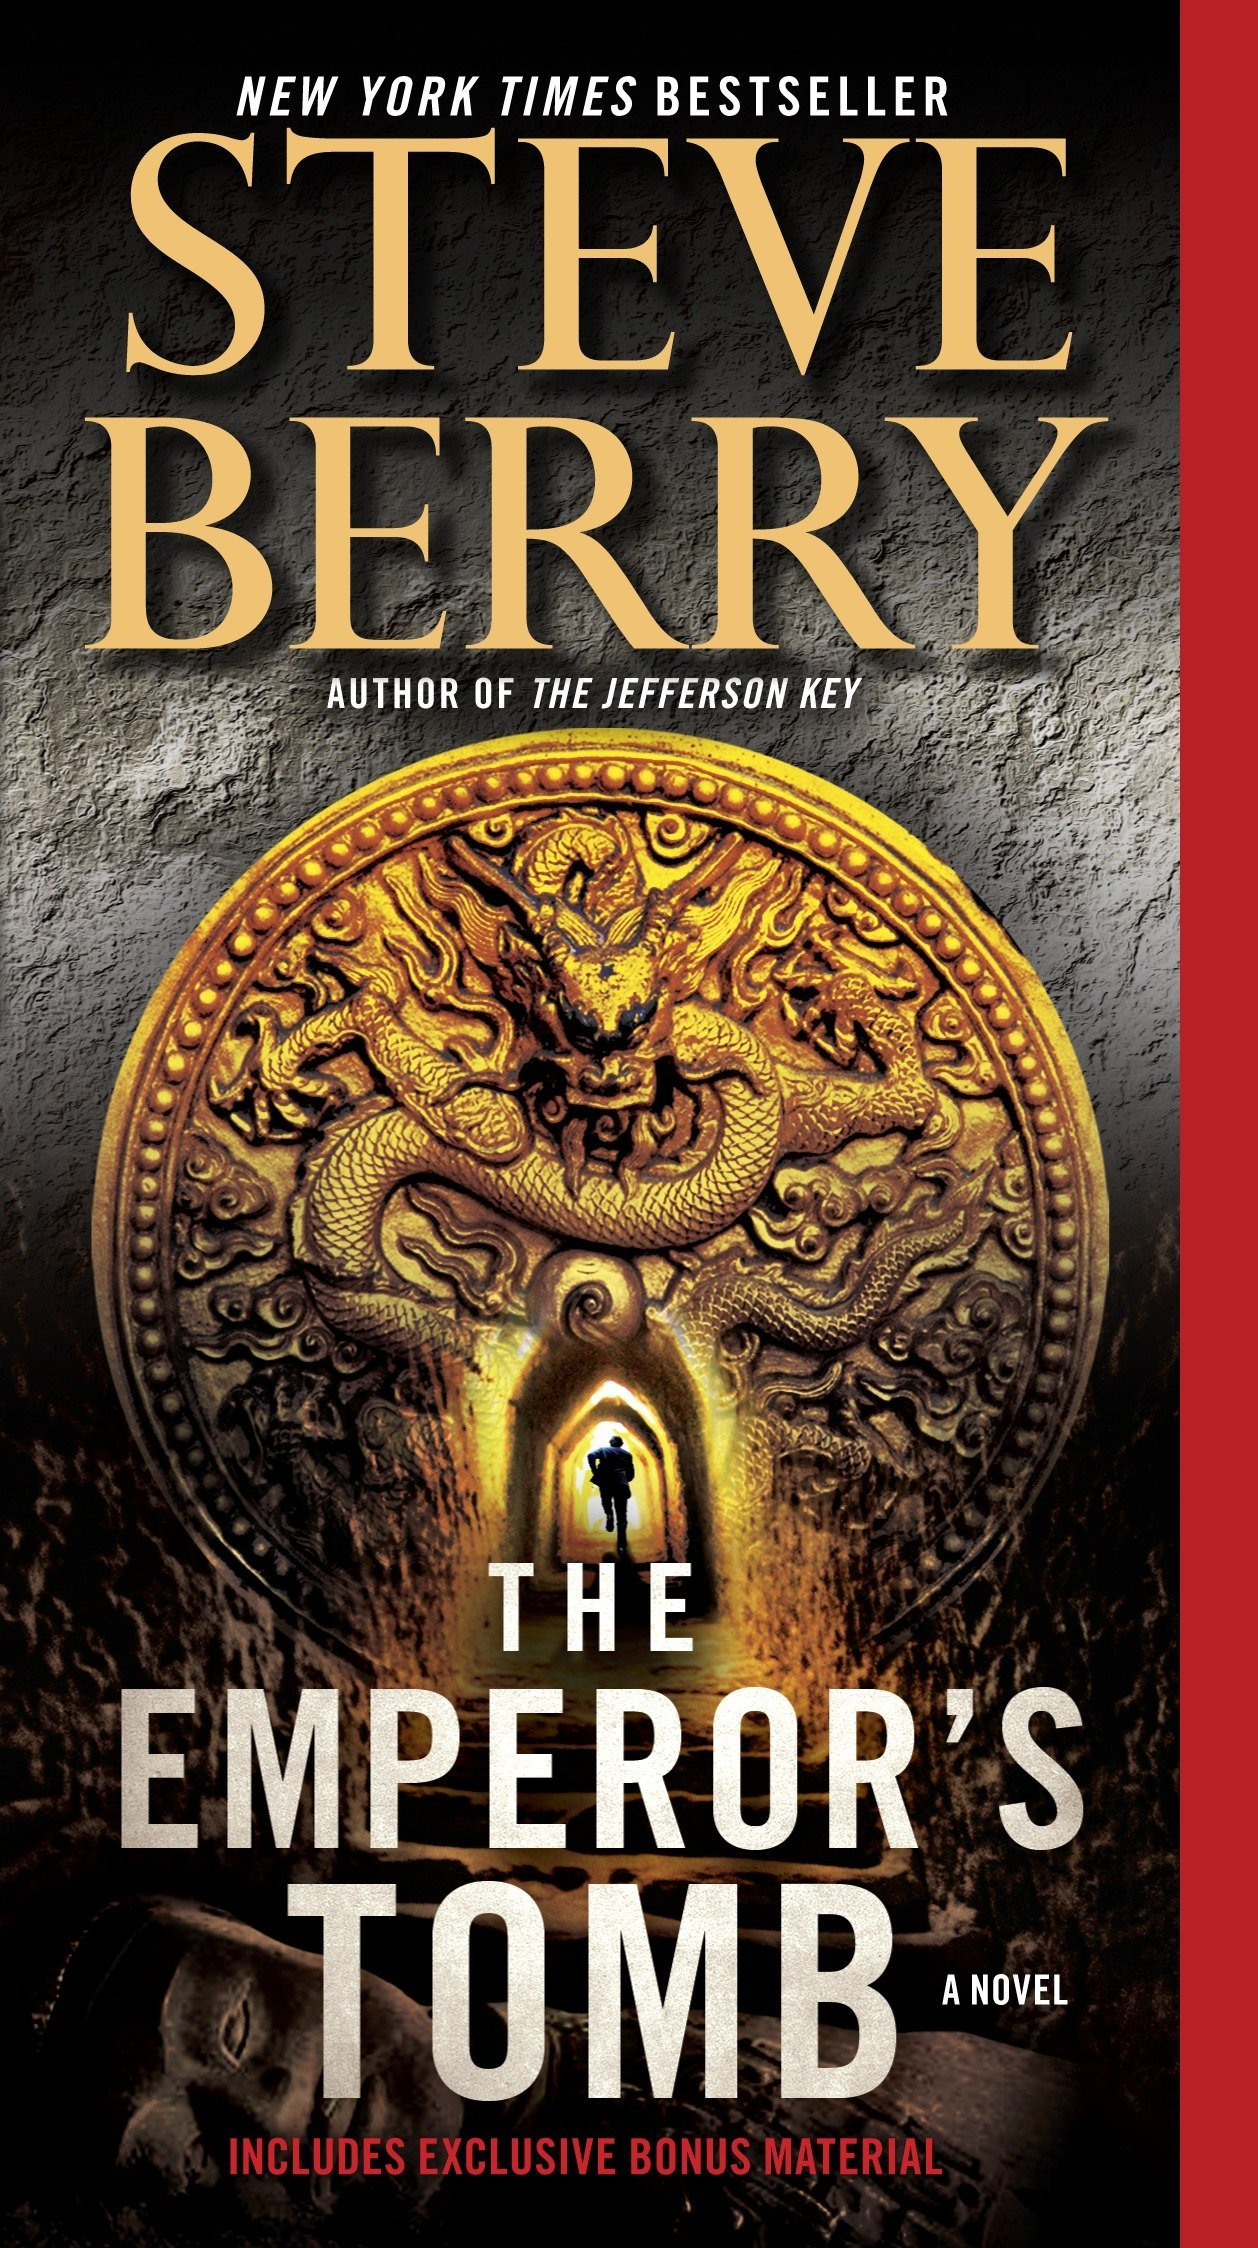 Amazon.com: The Emperor's Tomb (with bonus short story The Balkan Escape):  A Novel (Cotton Malone) (9780345505507): Steve Berry: Books